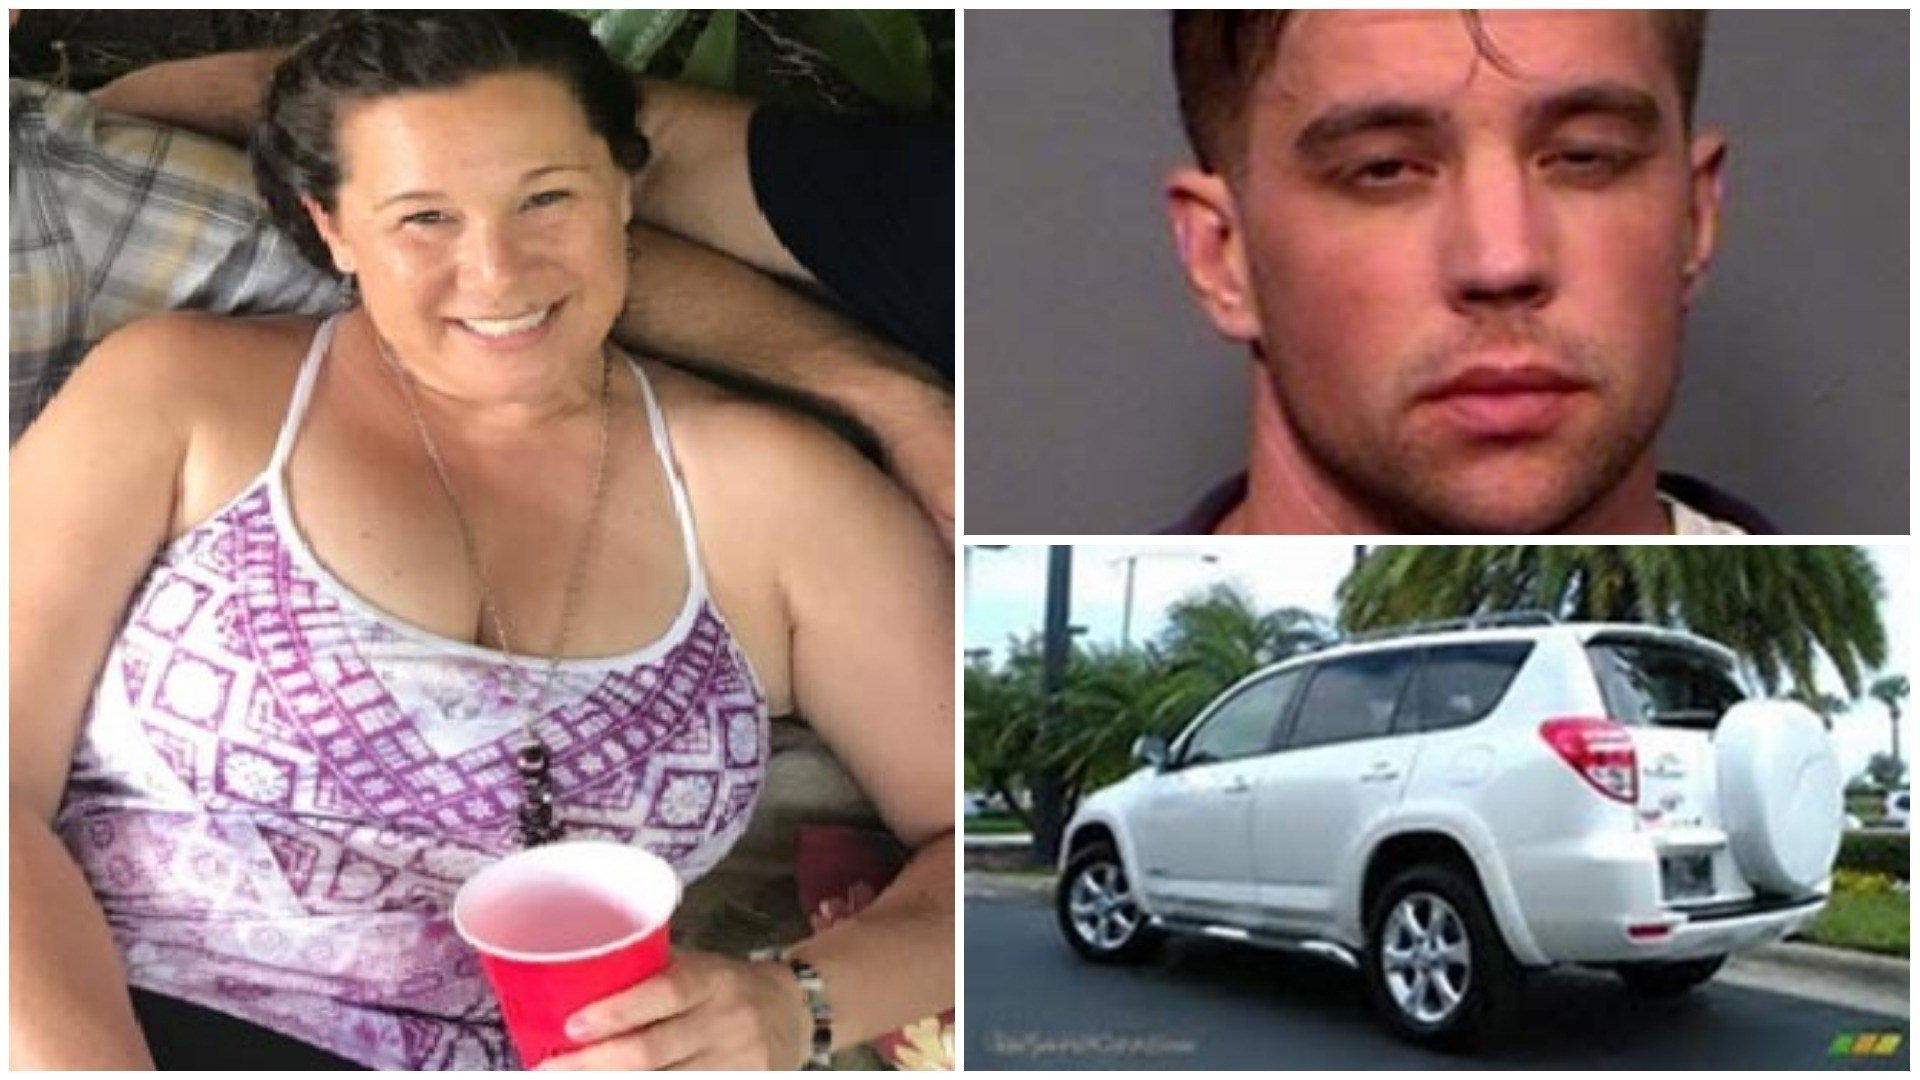 Cathryn Gorospe (left) has not been seen since Sunday. Police say she posted bond for Charle Malzahn (top right) and was driving a Toyota Rav 4 (bottom right). (Source: Flagstaff PD)